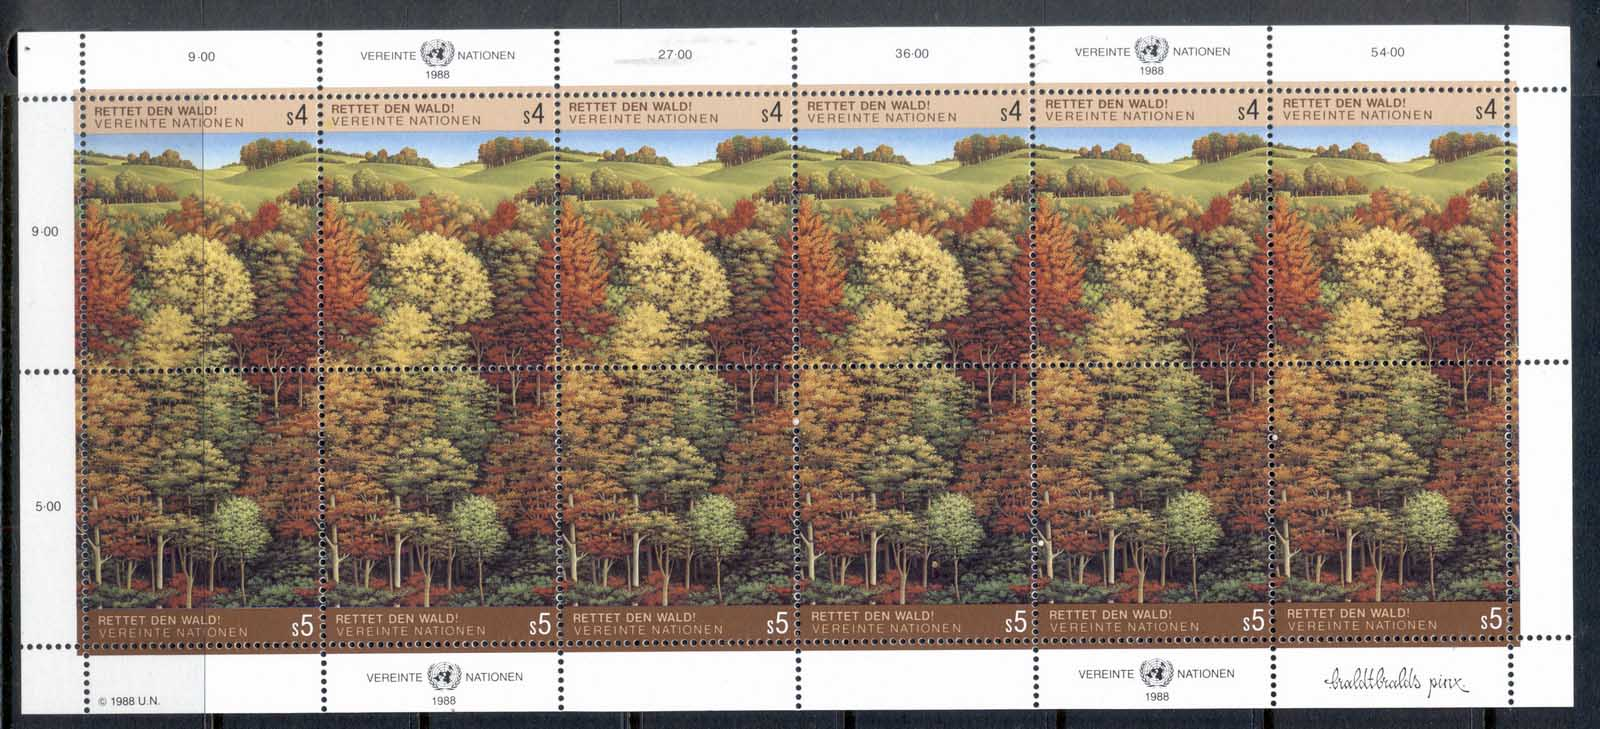 UN Vienna 1987 Survival of the Forests sheet MUH